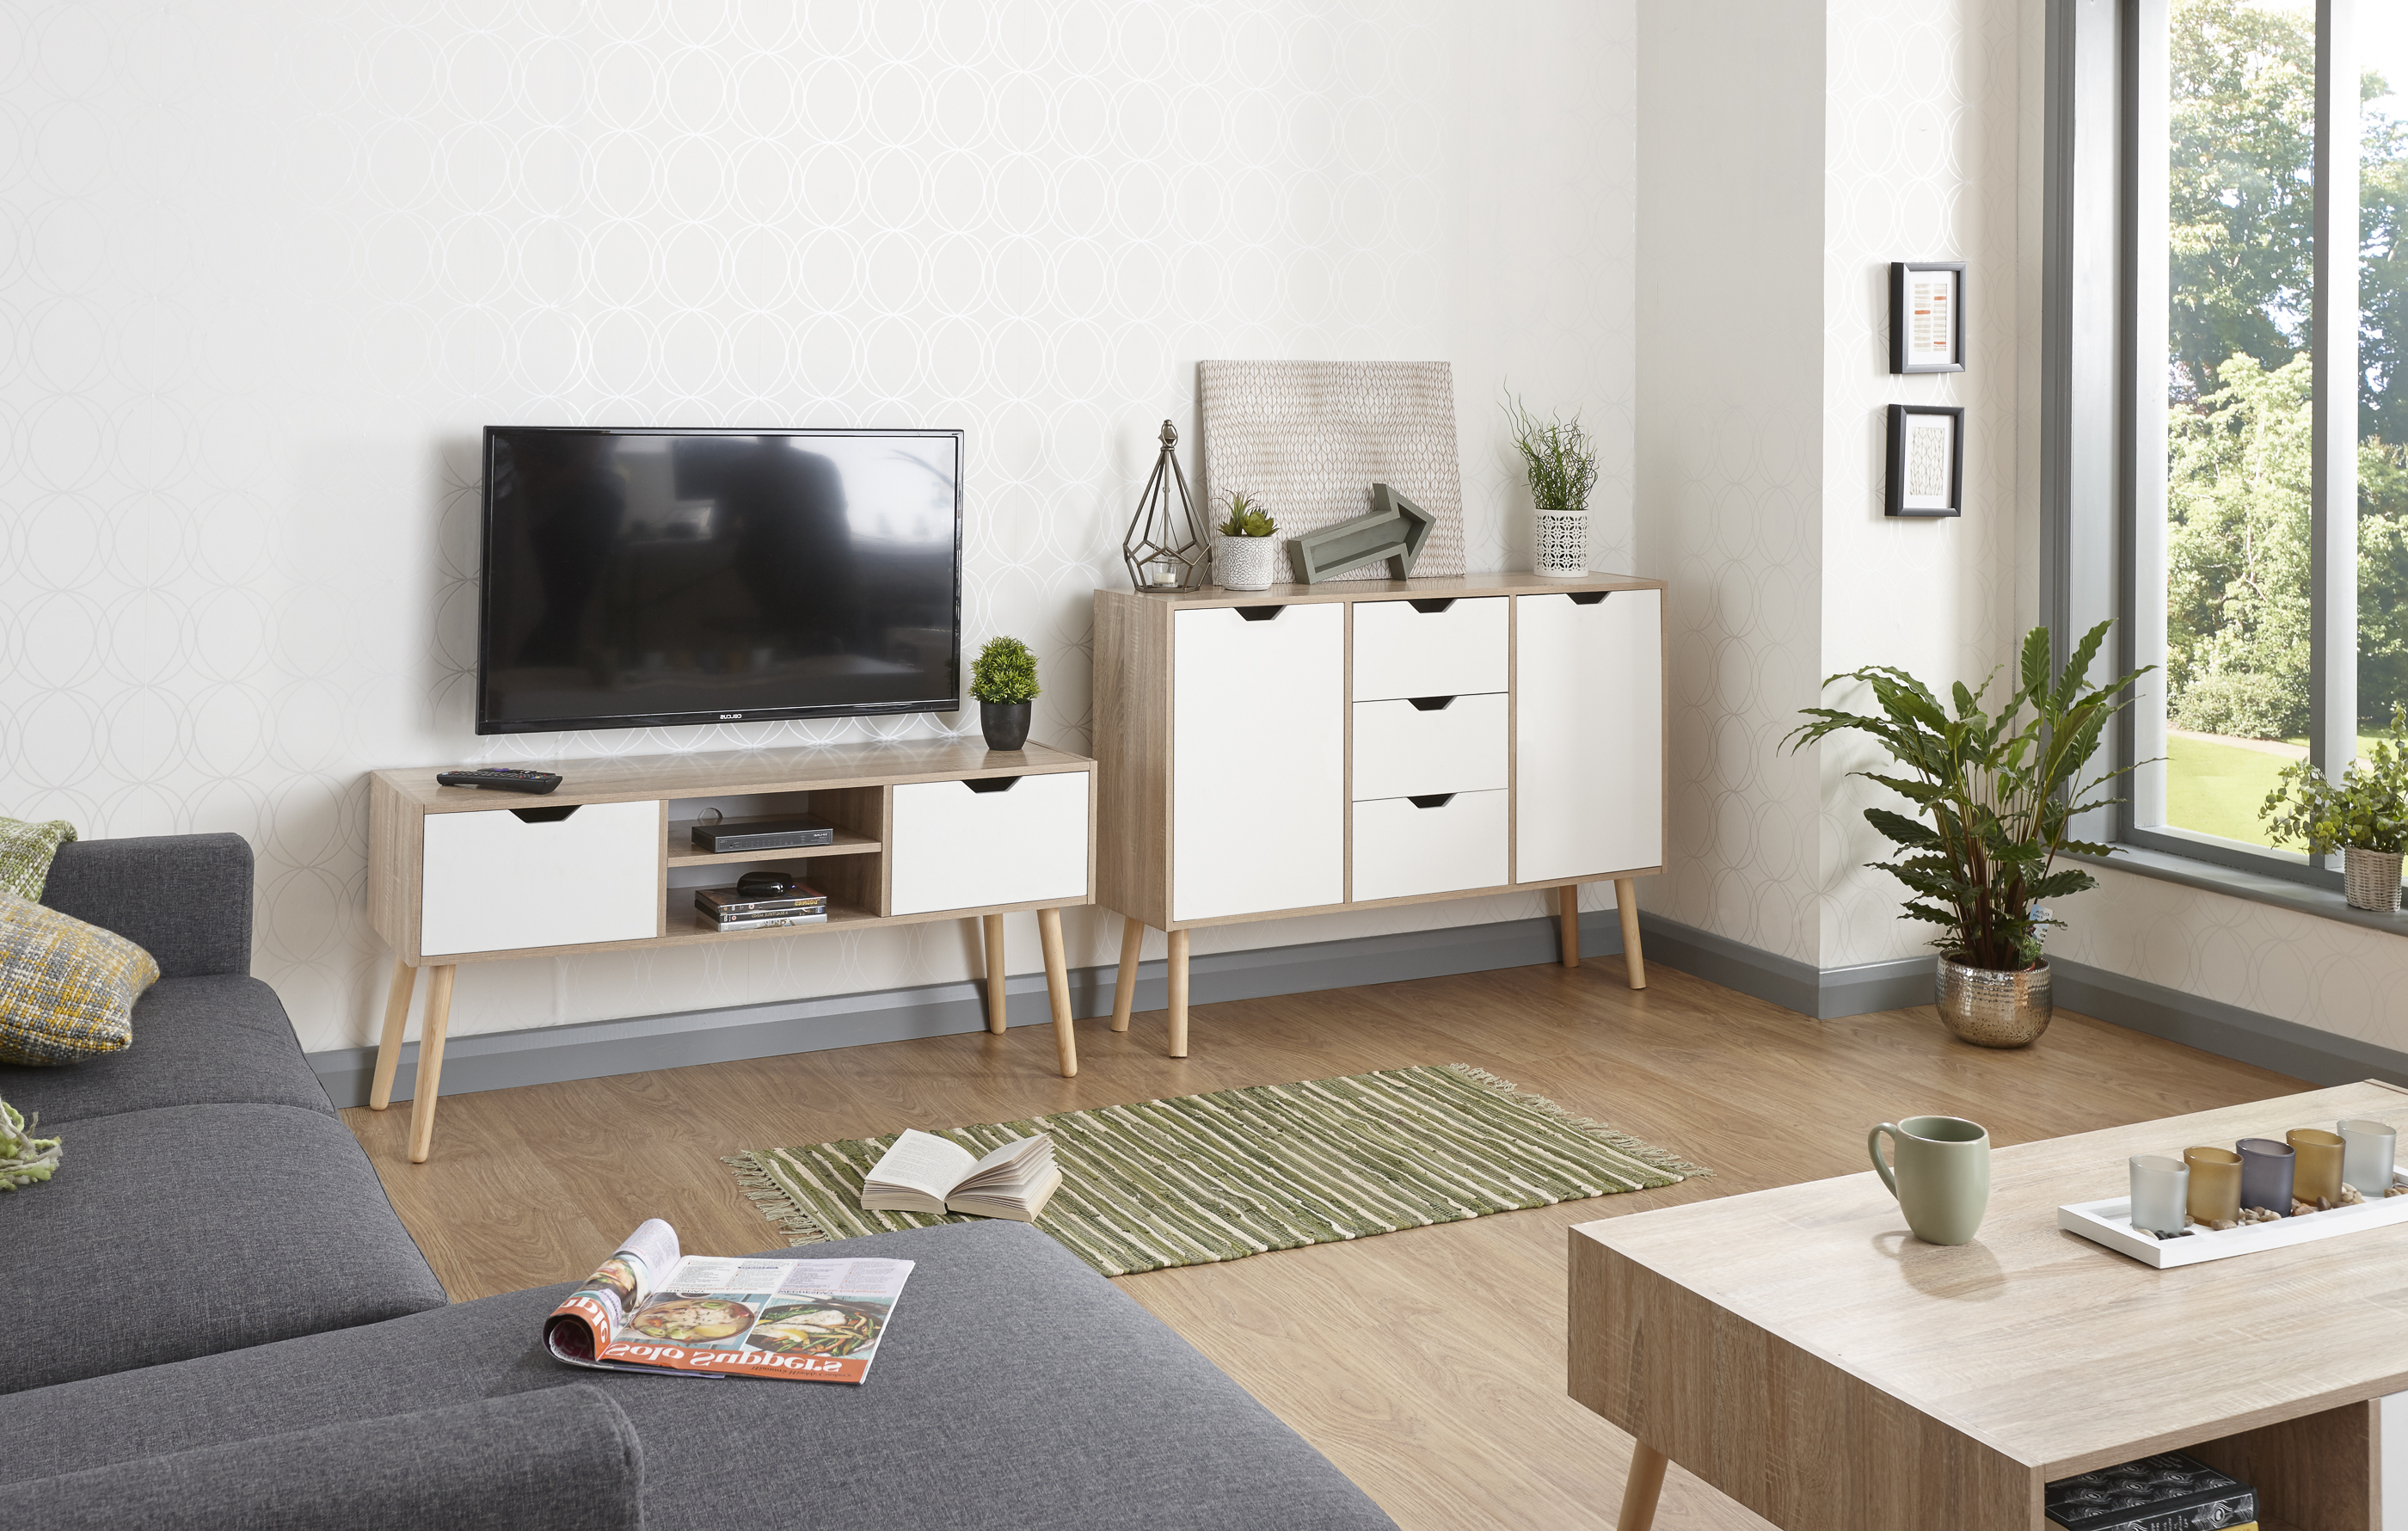 Most Recent Stockholm White & Oak Living Room Range – Sideboard, Coffee Table With Regard To Tv Cabinets And Coffee Table Sets (View 10 of 20)